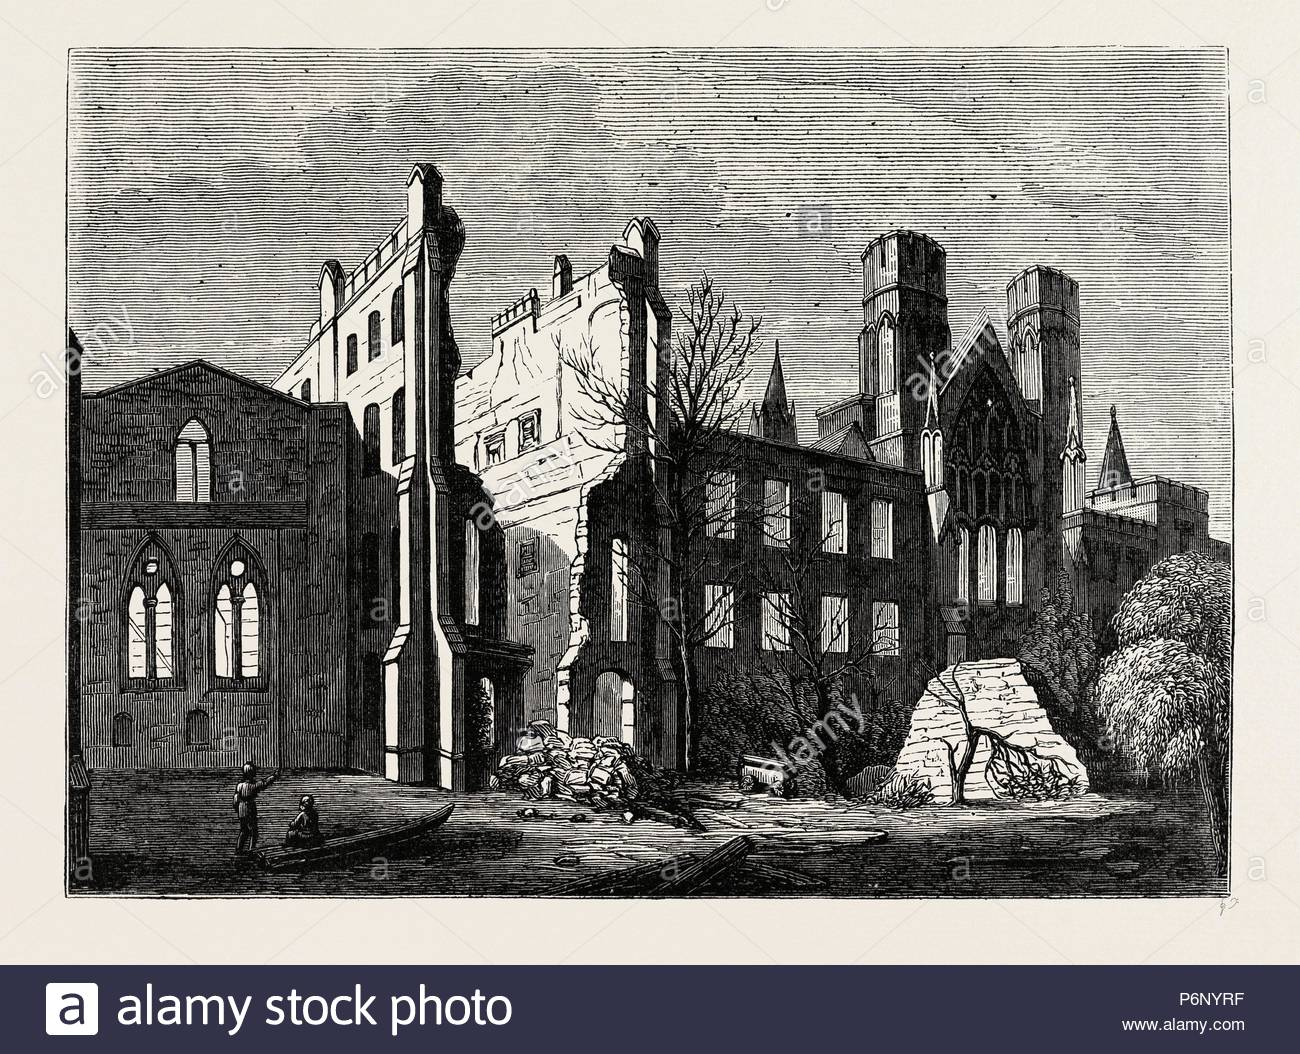 THE HOUSES OF PARLIAMENT AFTER THE FIRE, IN 1834. London, UK, 19th century engraving. - Stock Image